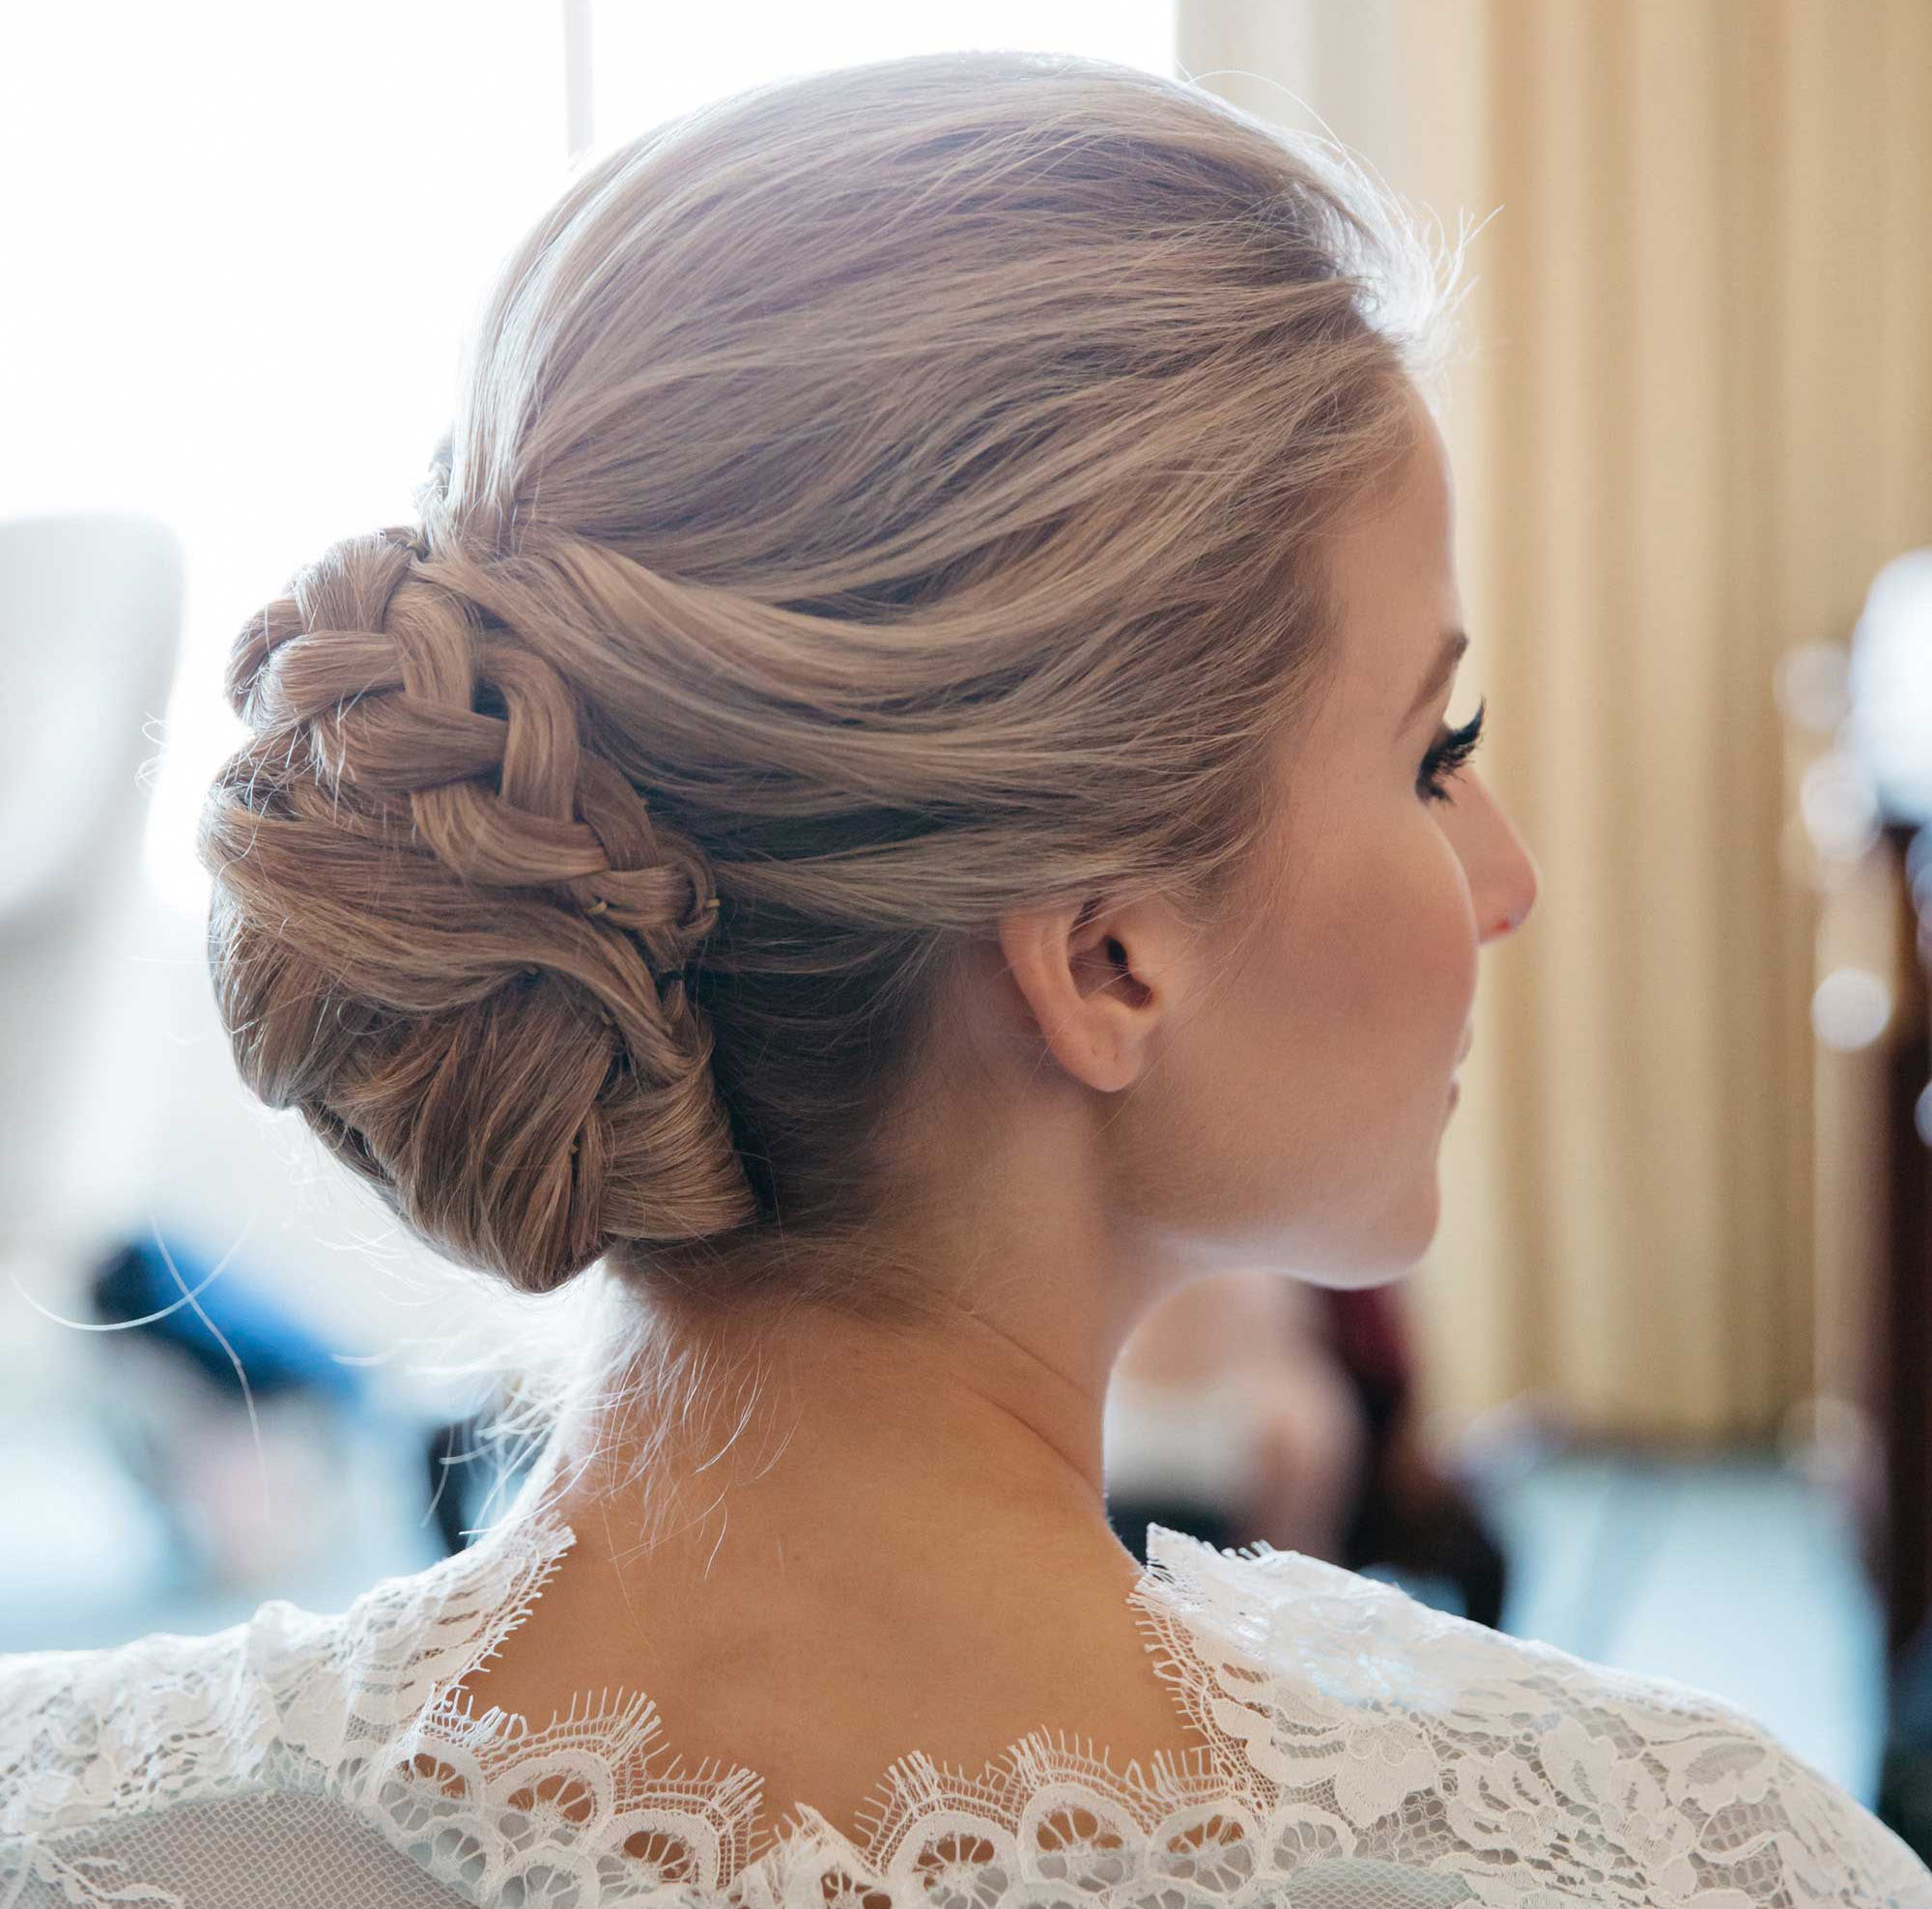 Swell Braided Hairstyles 5 Ideas For Your Wedding Look Inside Weddings Hairstyles For Men Maxibearus